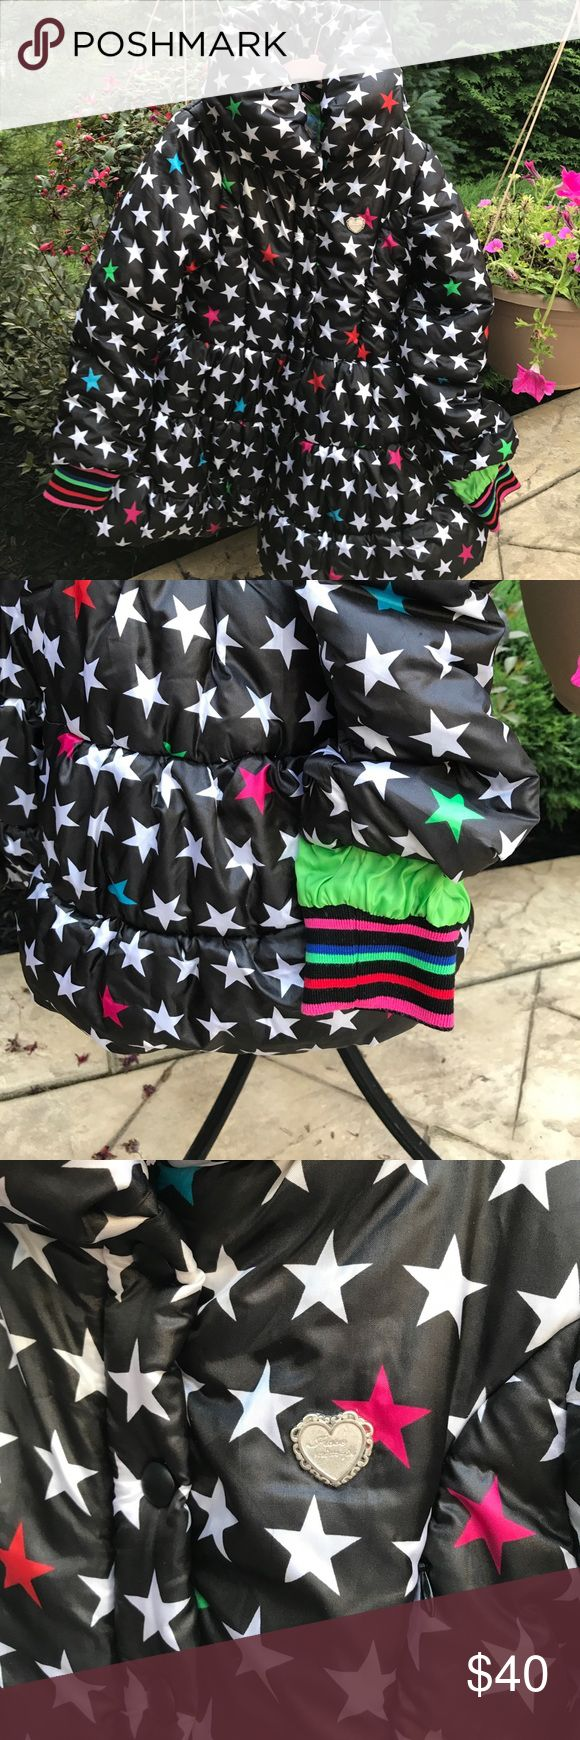 Mimpi Circus Show Girls' Coat Black with White, pink, green, blue stars throughout. Cuffed wrists in stripes of pink, black, red, green and blue. Puffy coat with green lining. Zipper front with 4 snaps from waist up for added warmth. Mim-Pi Jackets & Coats Puffers